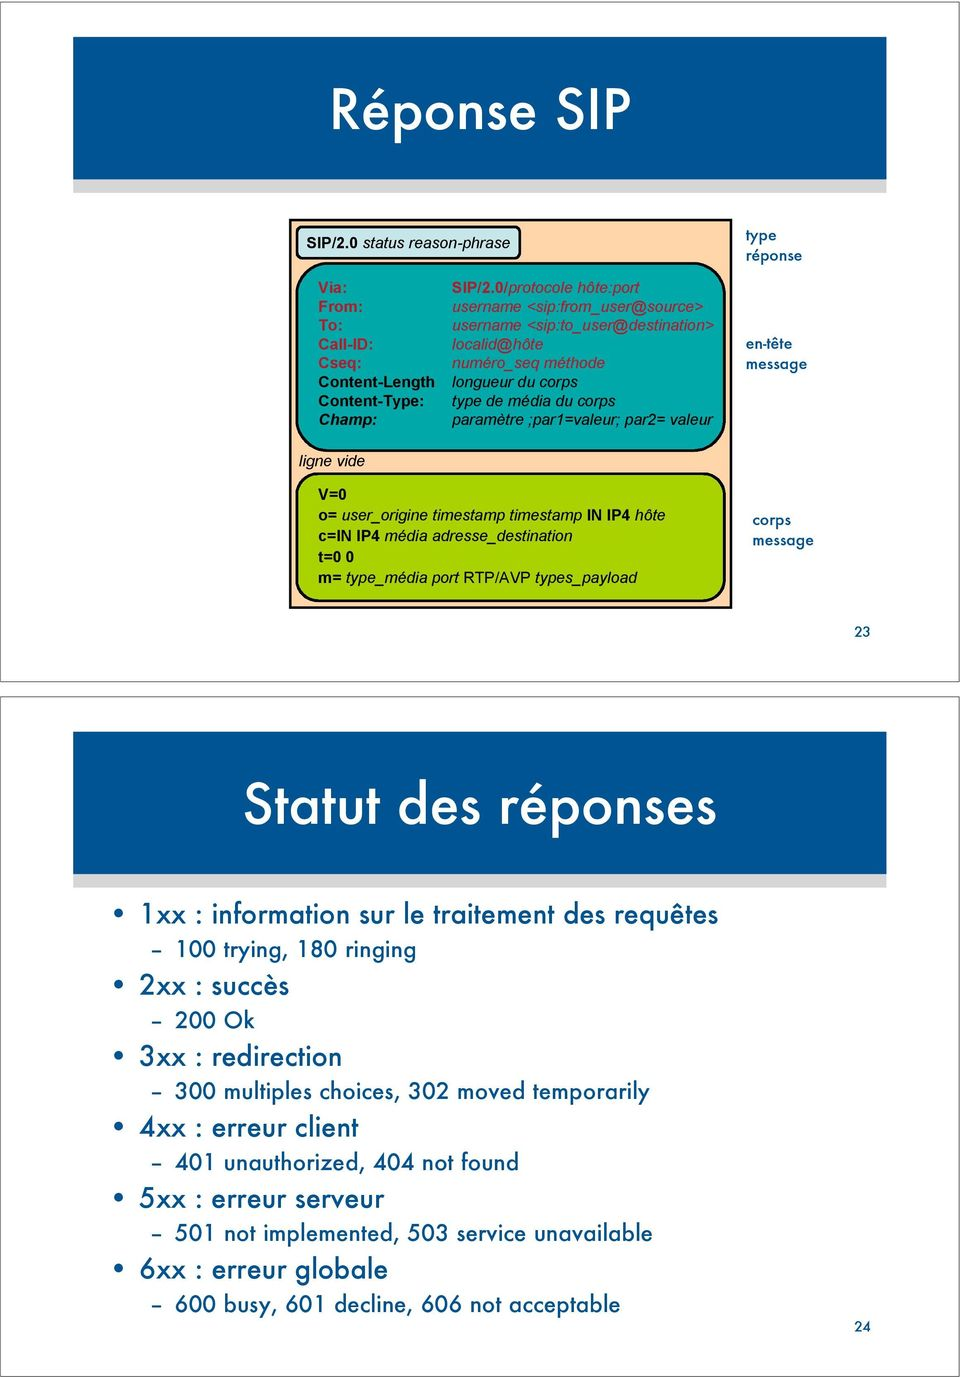 en-tête message ligne vide V=0 o= user_origine timestamp timestamp IN IP4 hôte c=in IP4 média adresse_destination t=0 0 m= type_média port RTP/AVP types_payload corps message 23 Statut des réponses